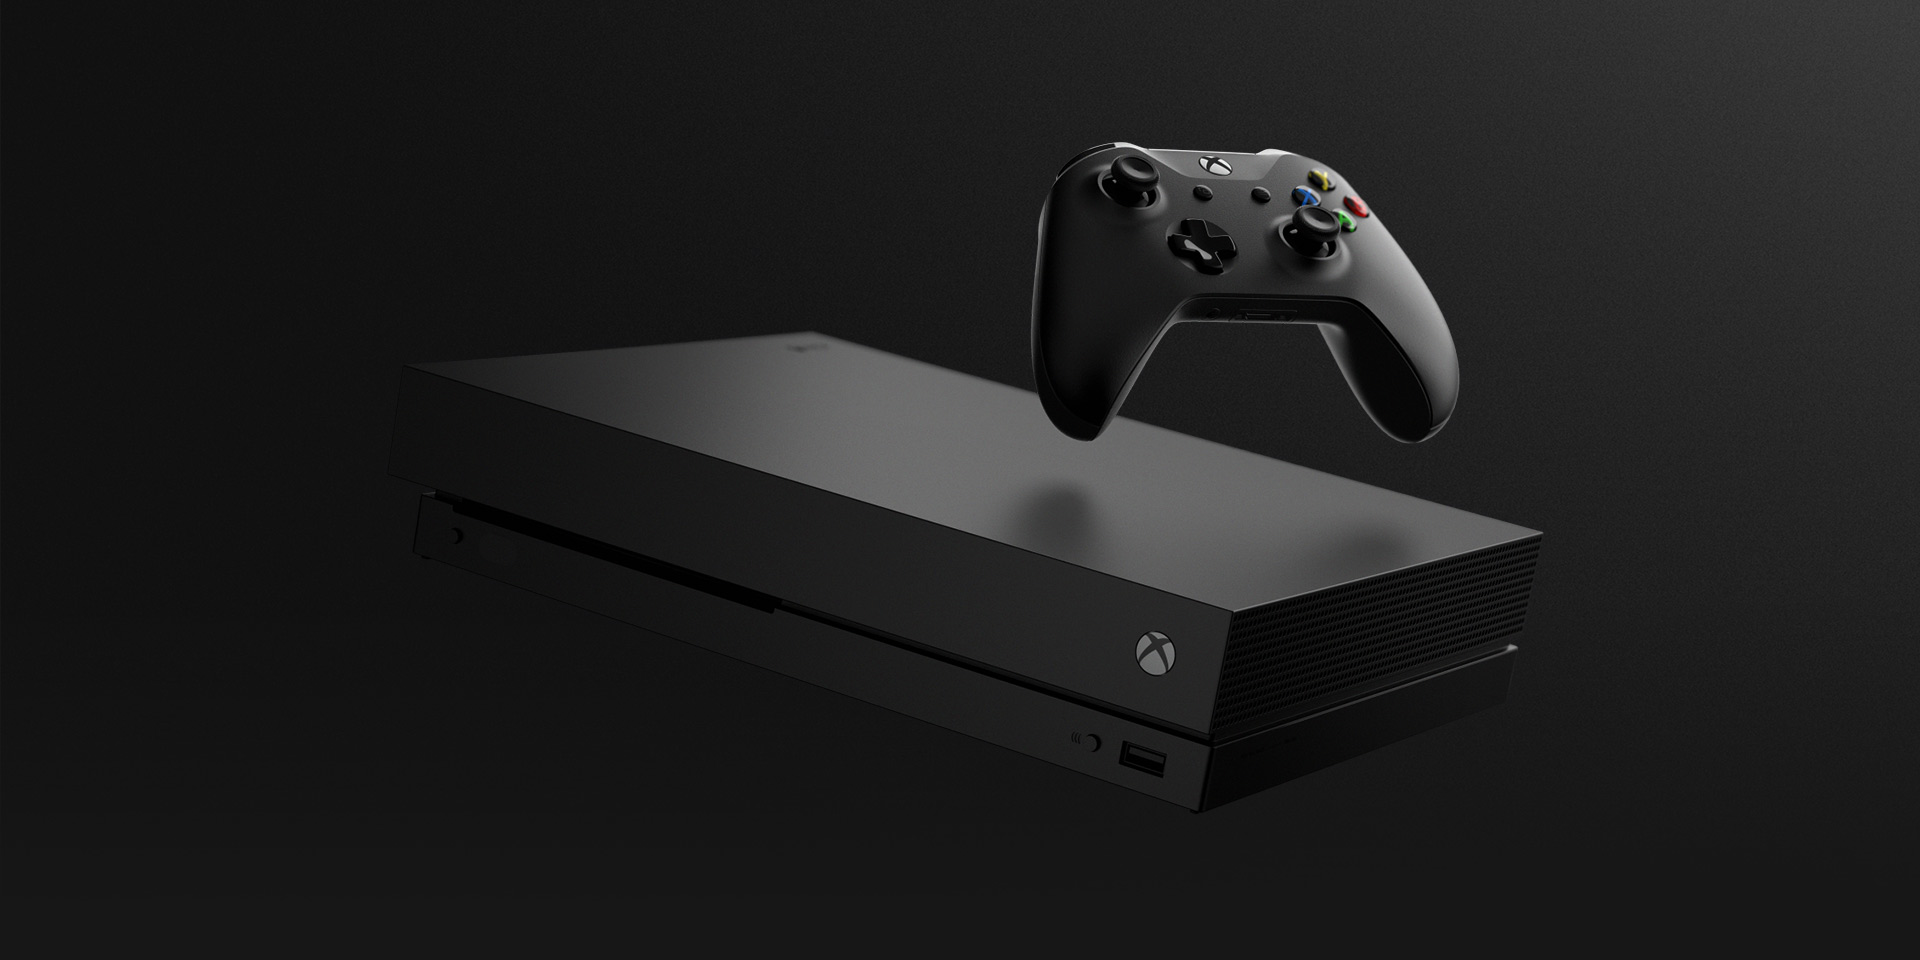 xbox one x prix date de sortie et fiche technique de la. Black Bedroom Furniture Sets. Home Design Ideas